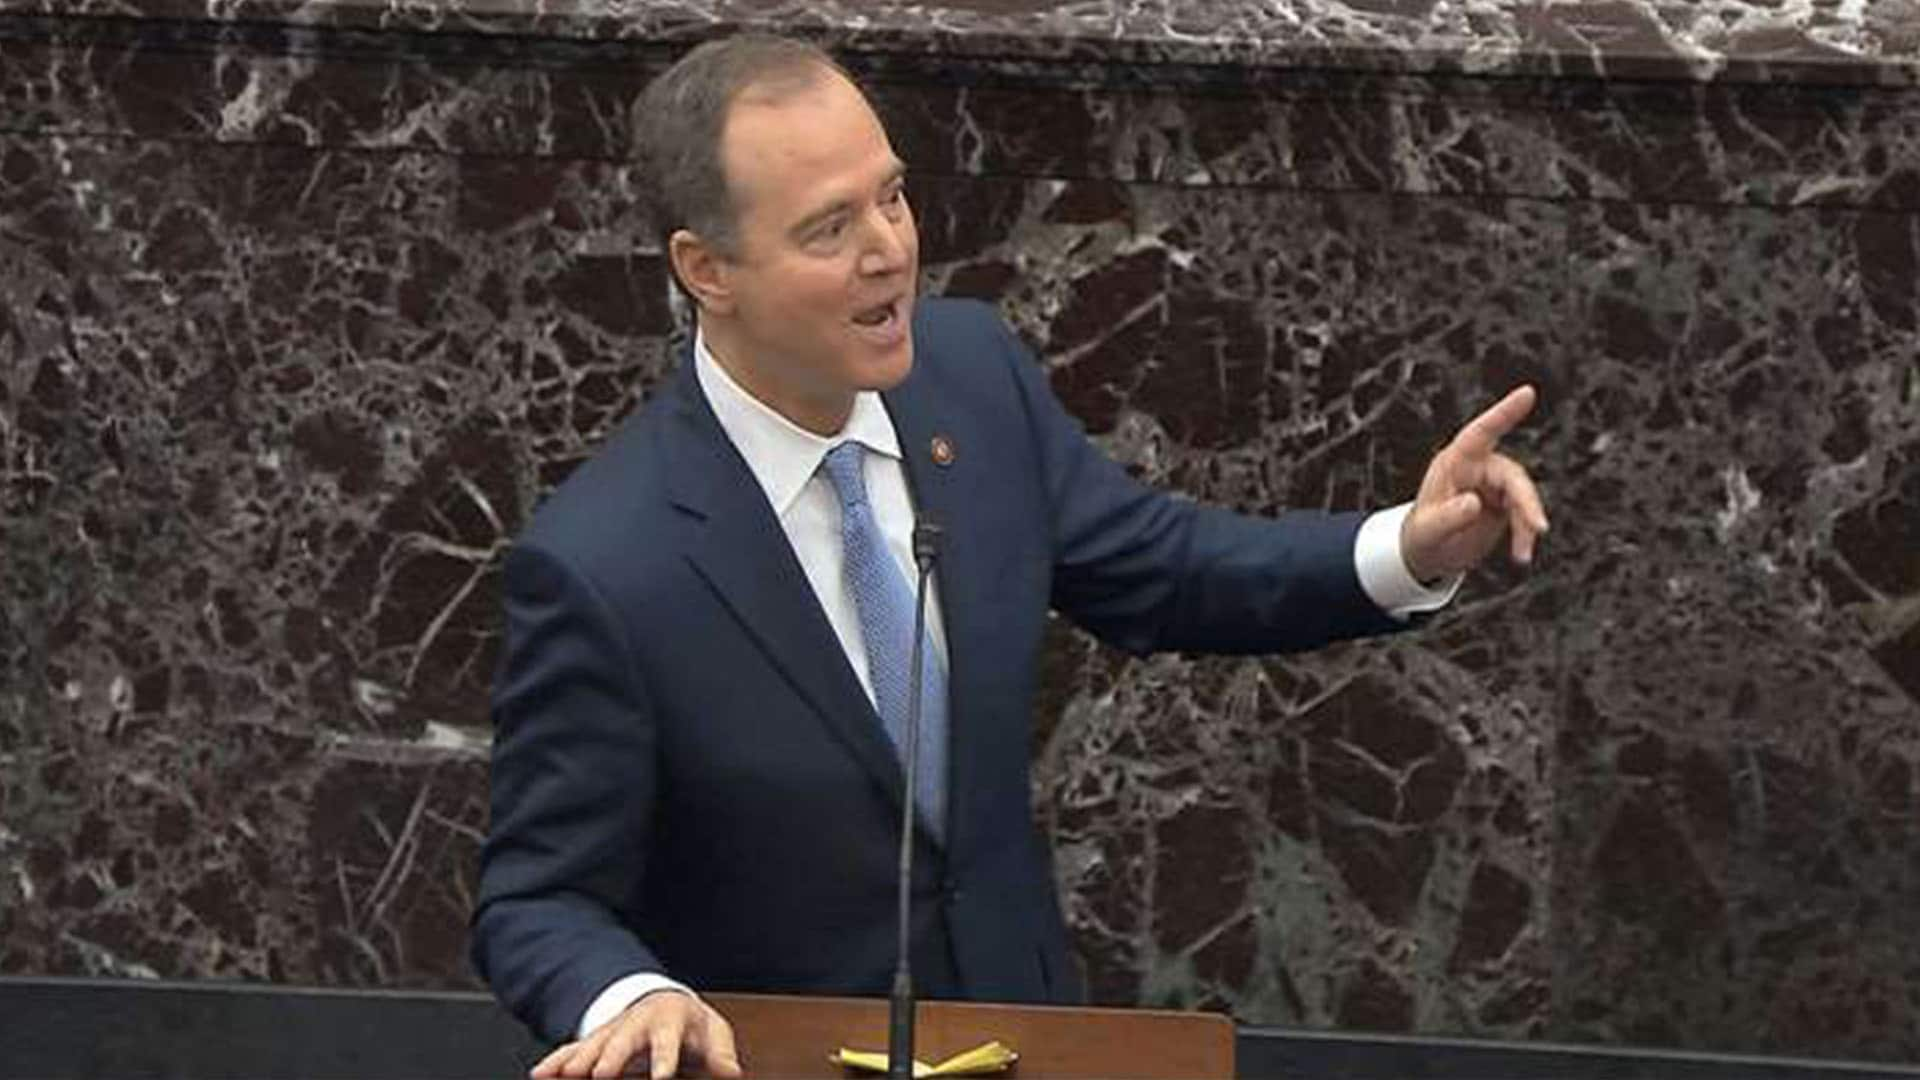 Wednesday-Shampeachment Day 1: Evil SA Schiff Reveals The Garbage Truck Strategy